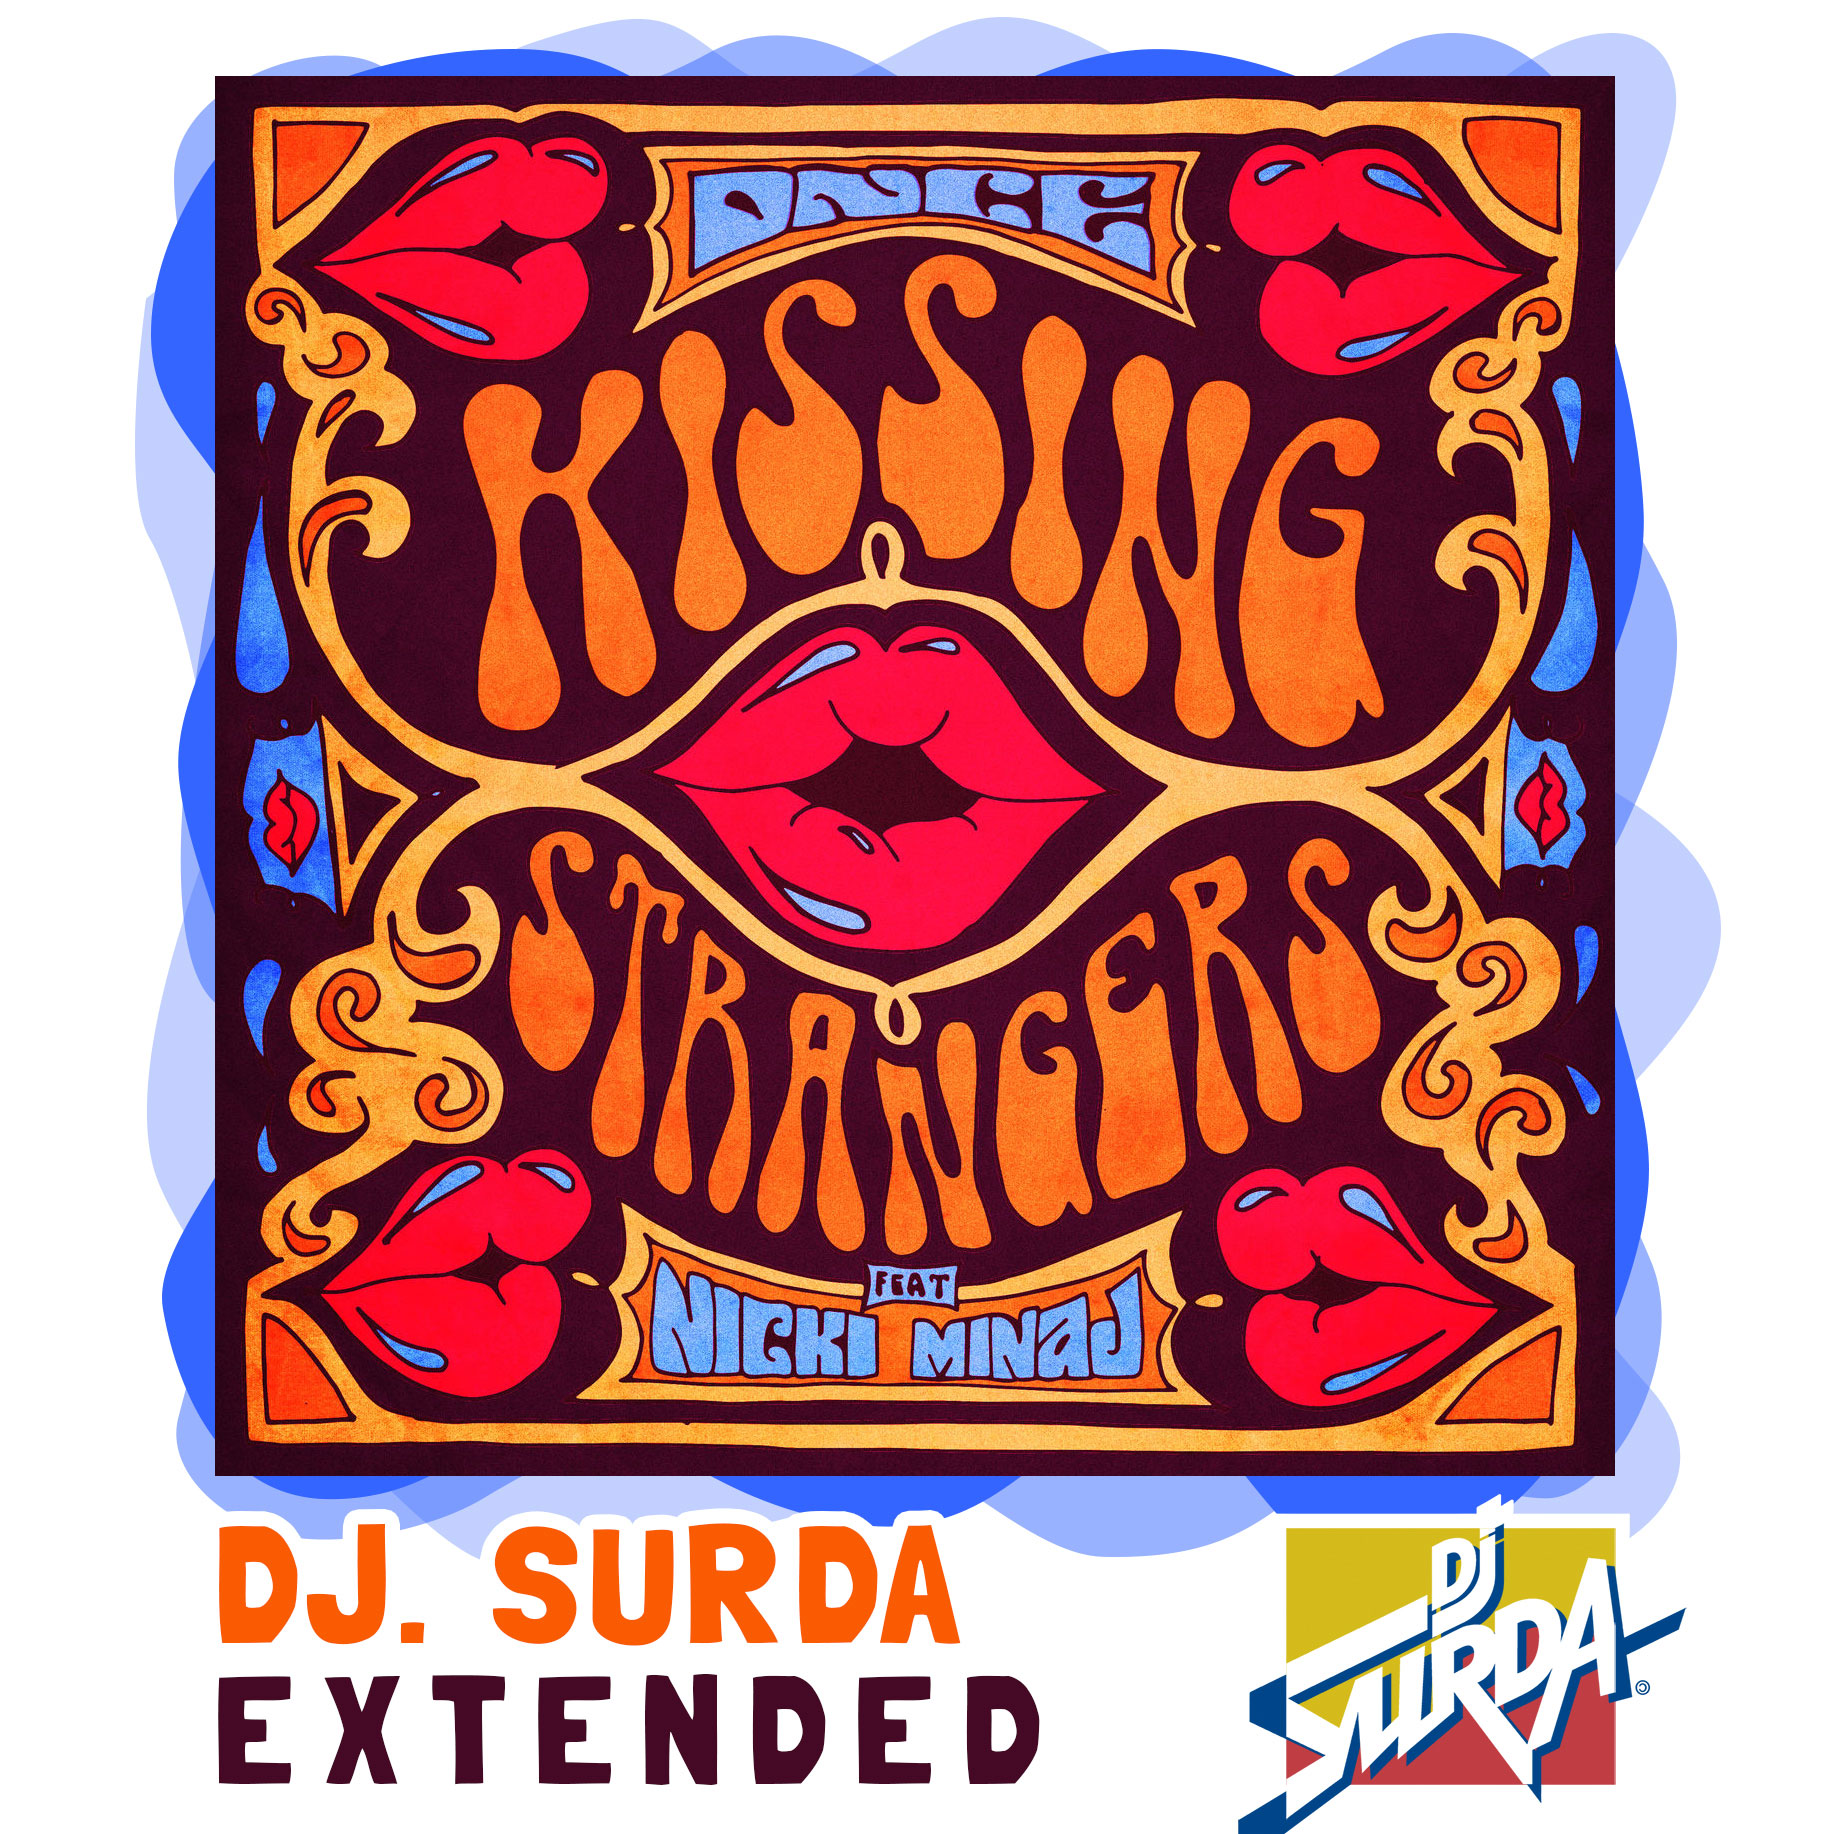 DNCE feat. Nicki Minaj – Kissing Strangers (Dj. Surda Extended Version)